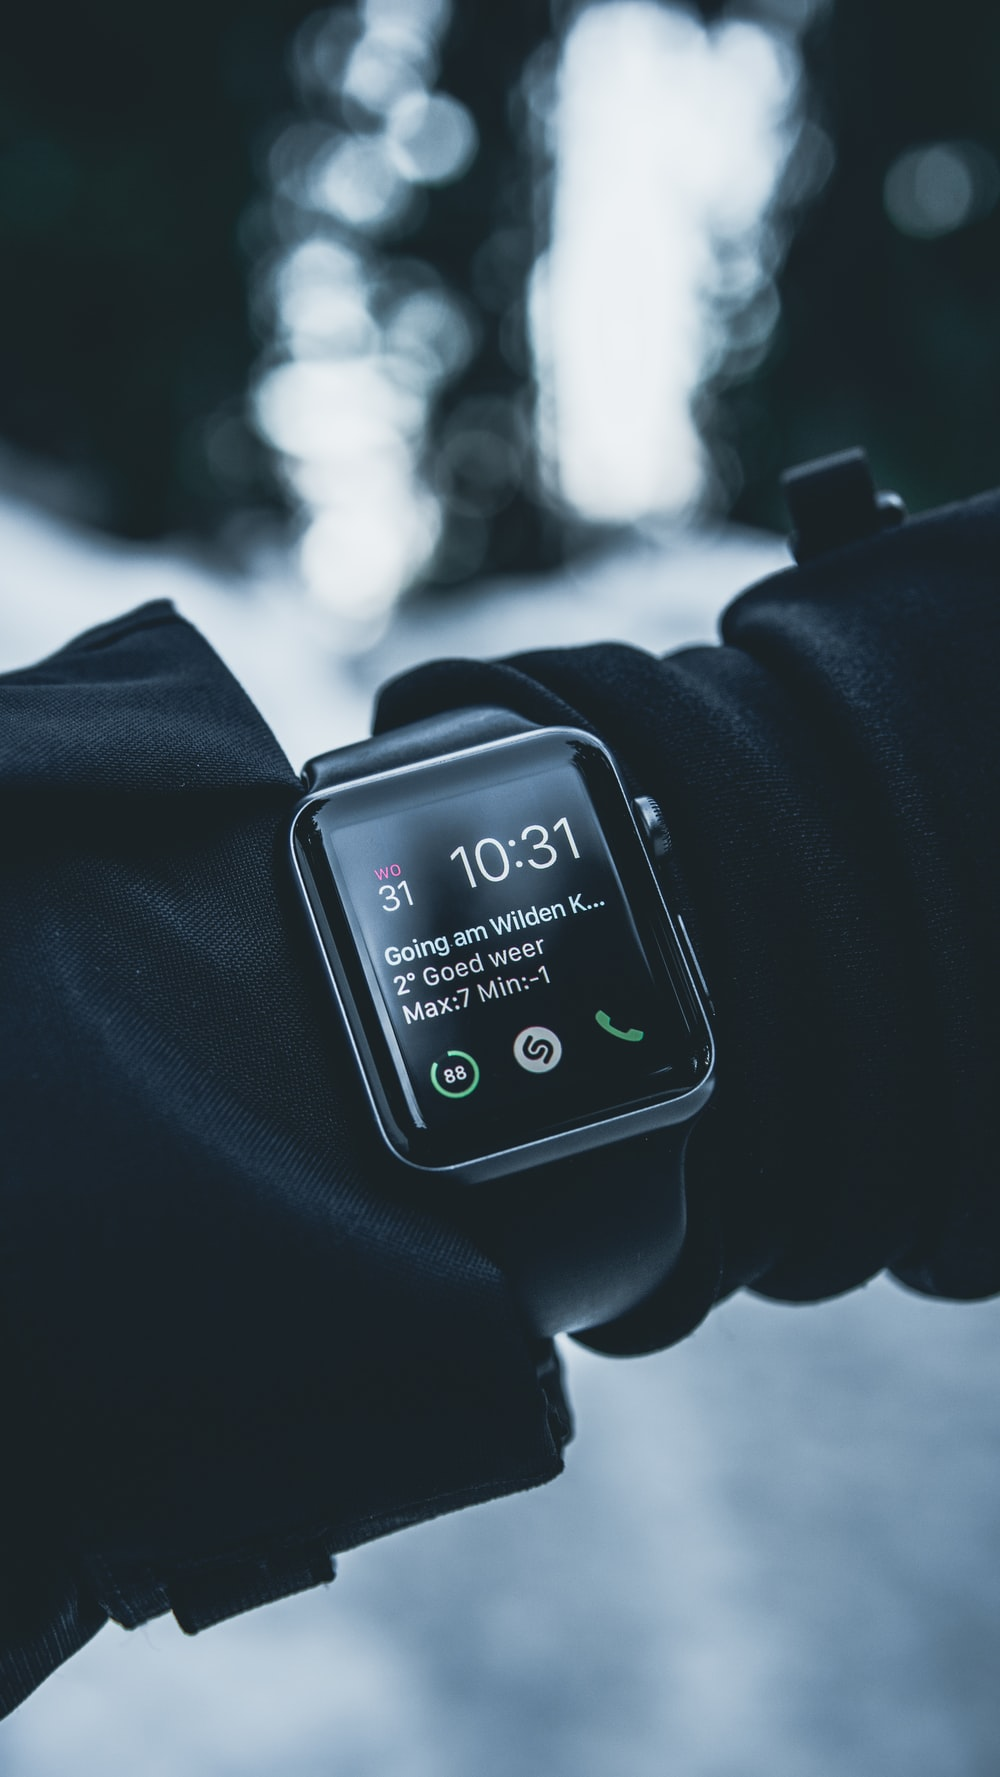 Smartwatch Pictures Download Free Images On Unsplash